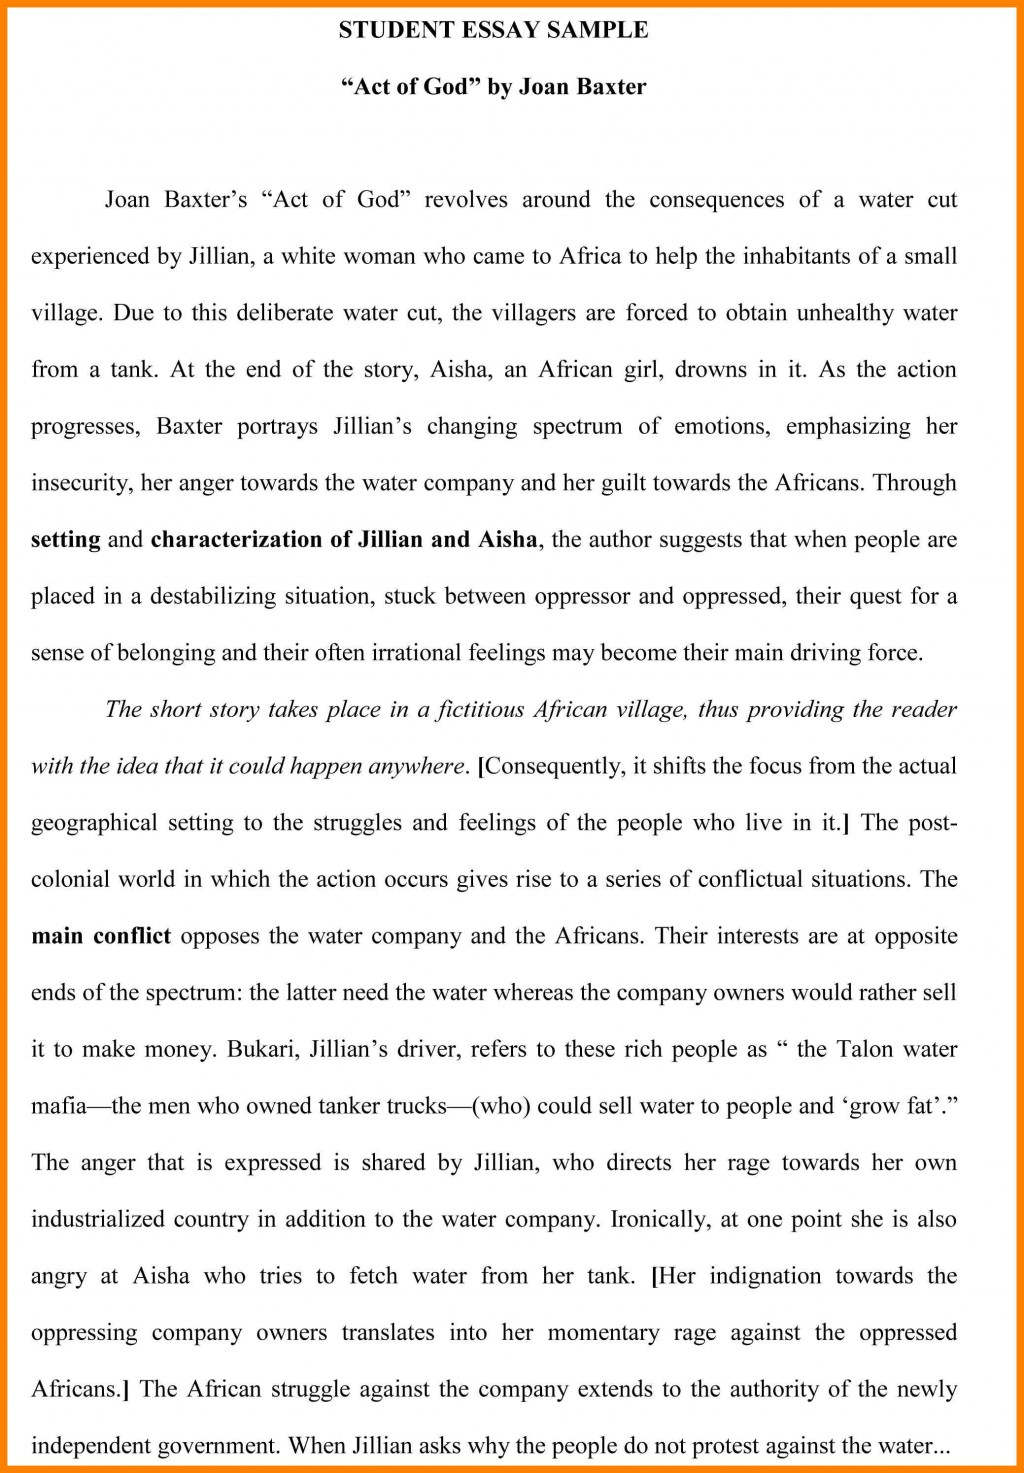 004 Essay Example Argumentative Pdf Examples Of Process Essays St Exemplification Opinion Classification Narrative Writing Sat Unique Outline Sample Download High School Large